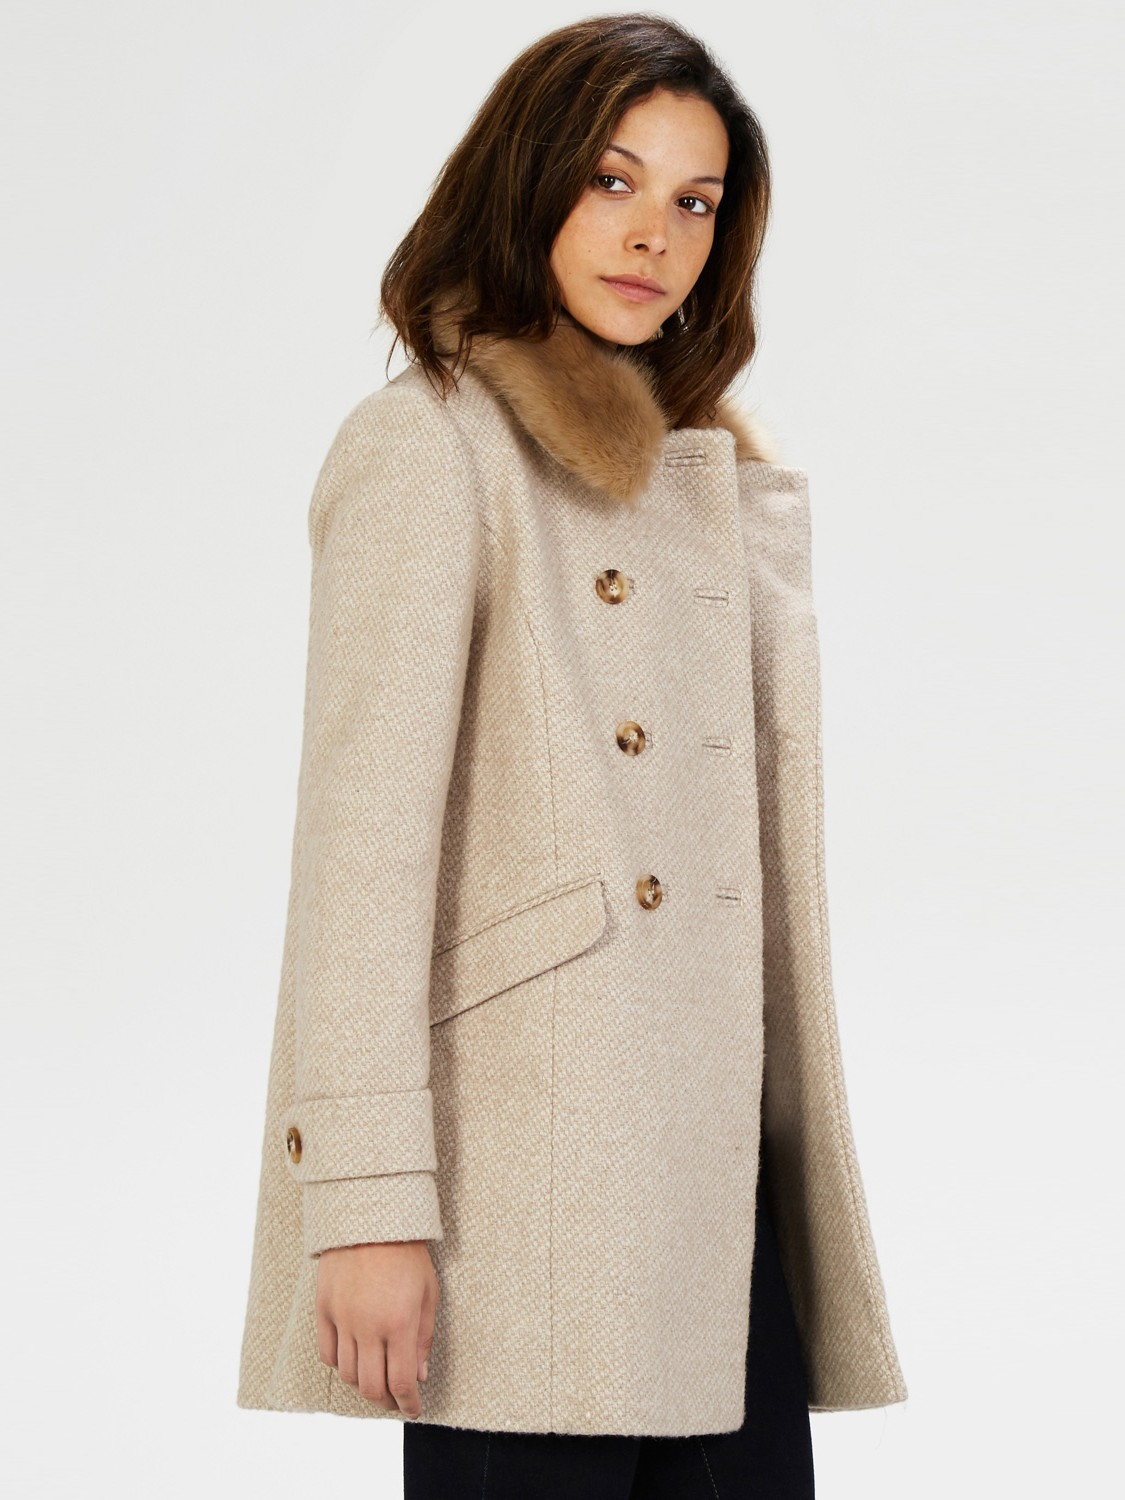 Warehouse Double Breasted Faux Fur Collar Jacket in Natural | Lyst